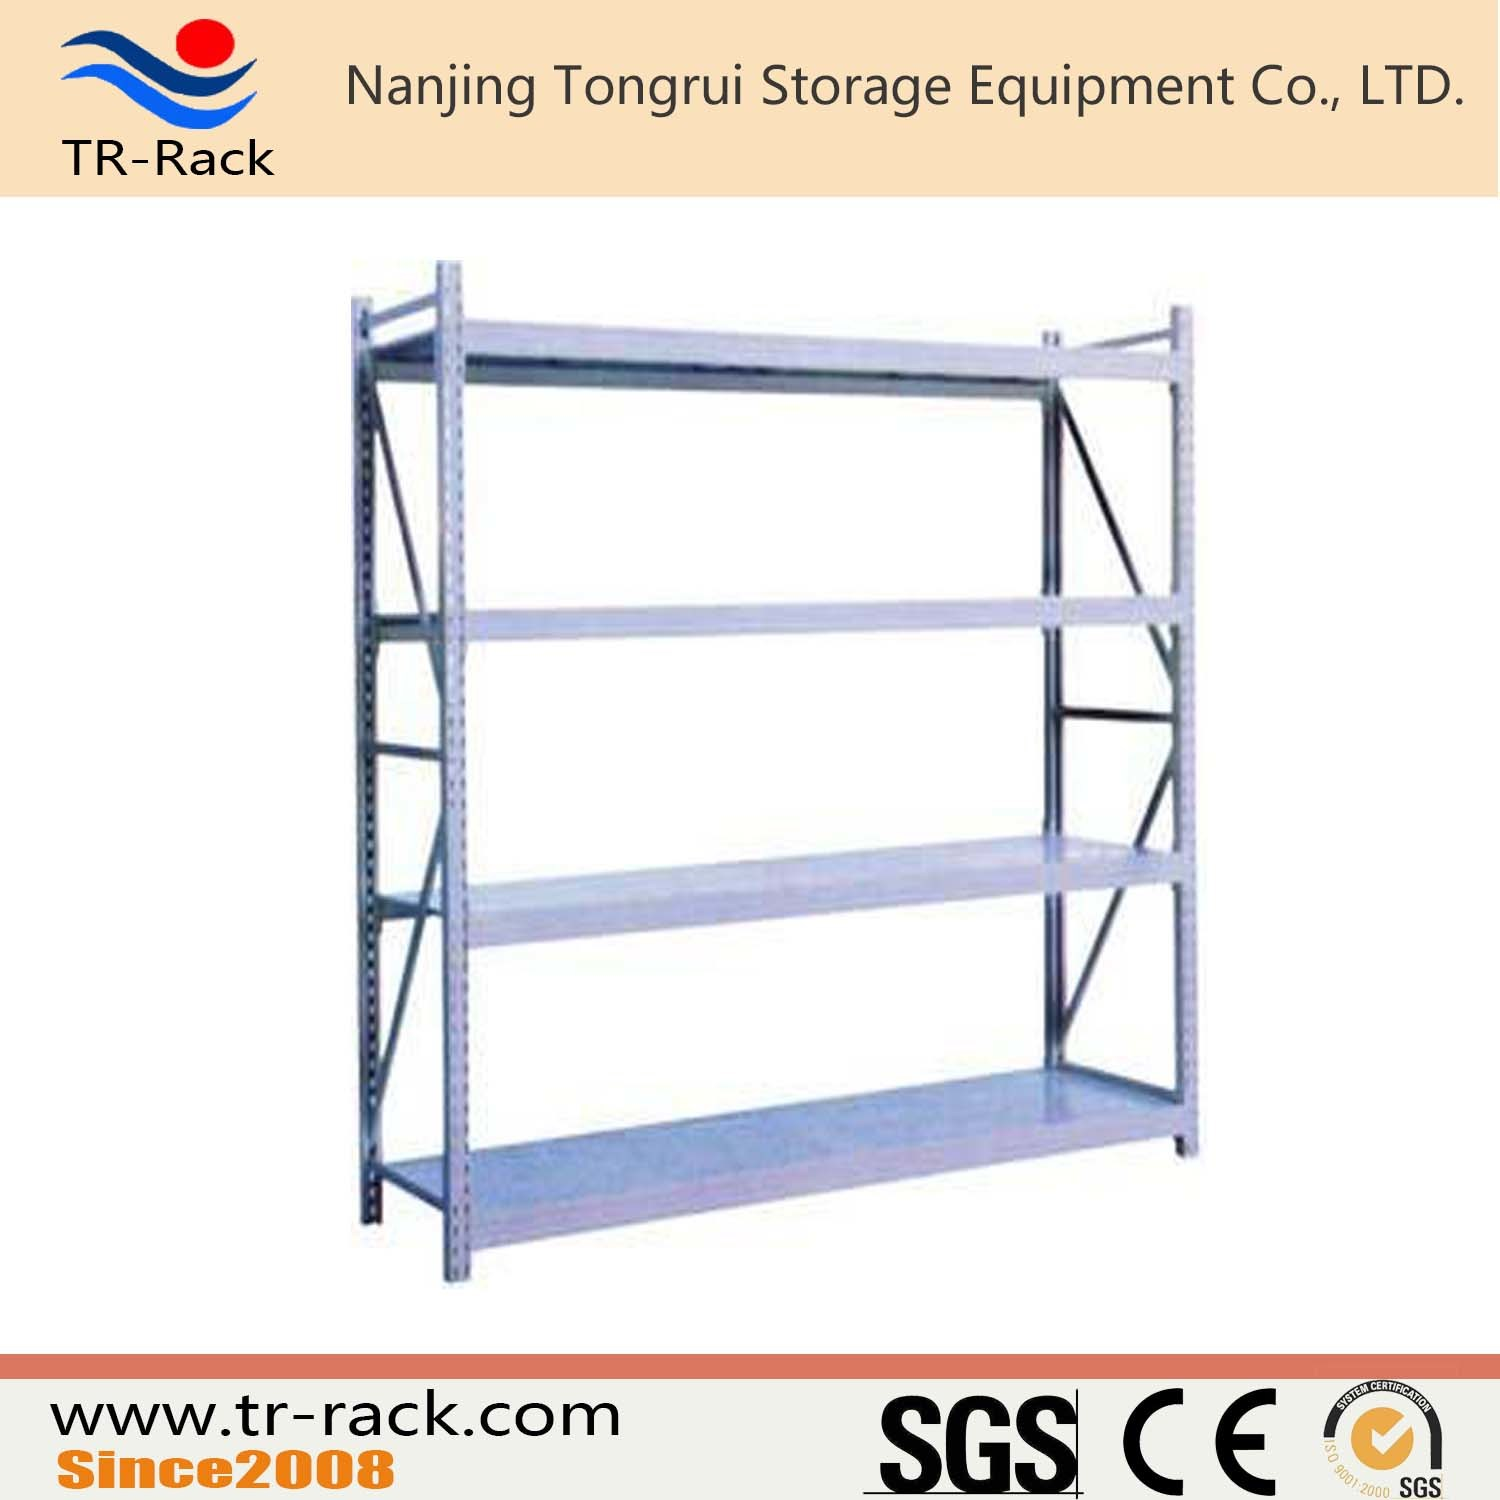 Medium Duty Long Sapn Storage Racking with Shelving